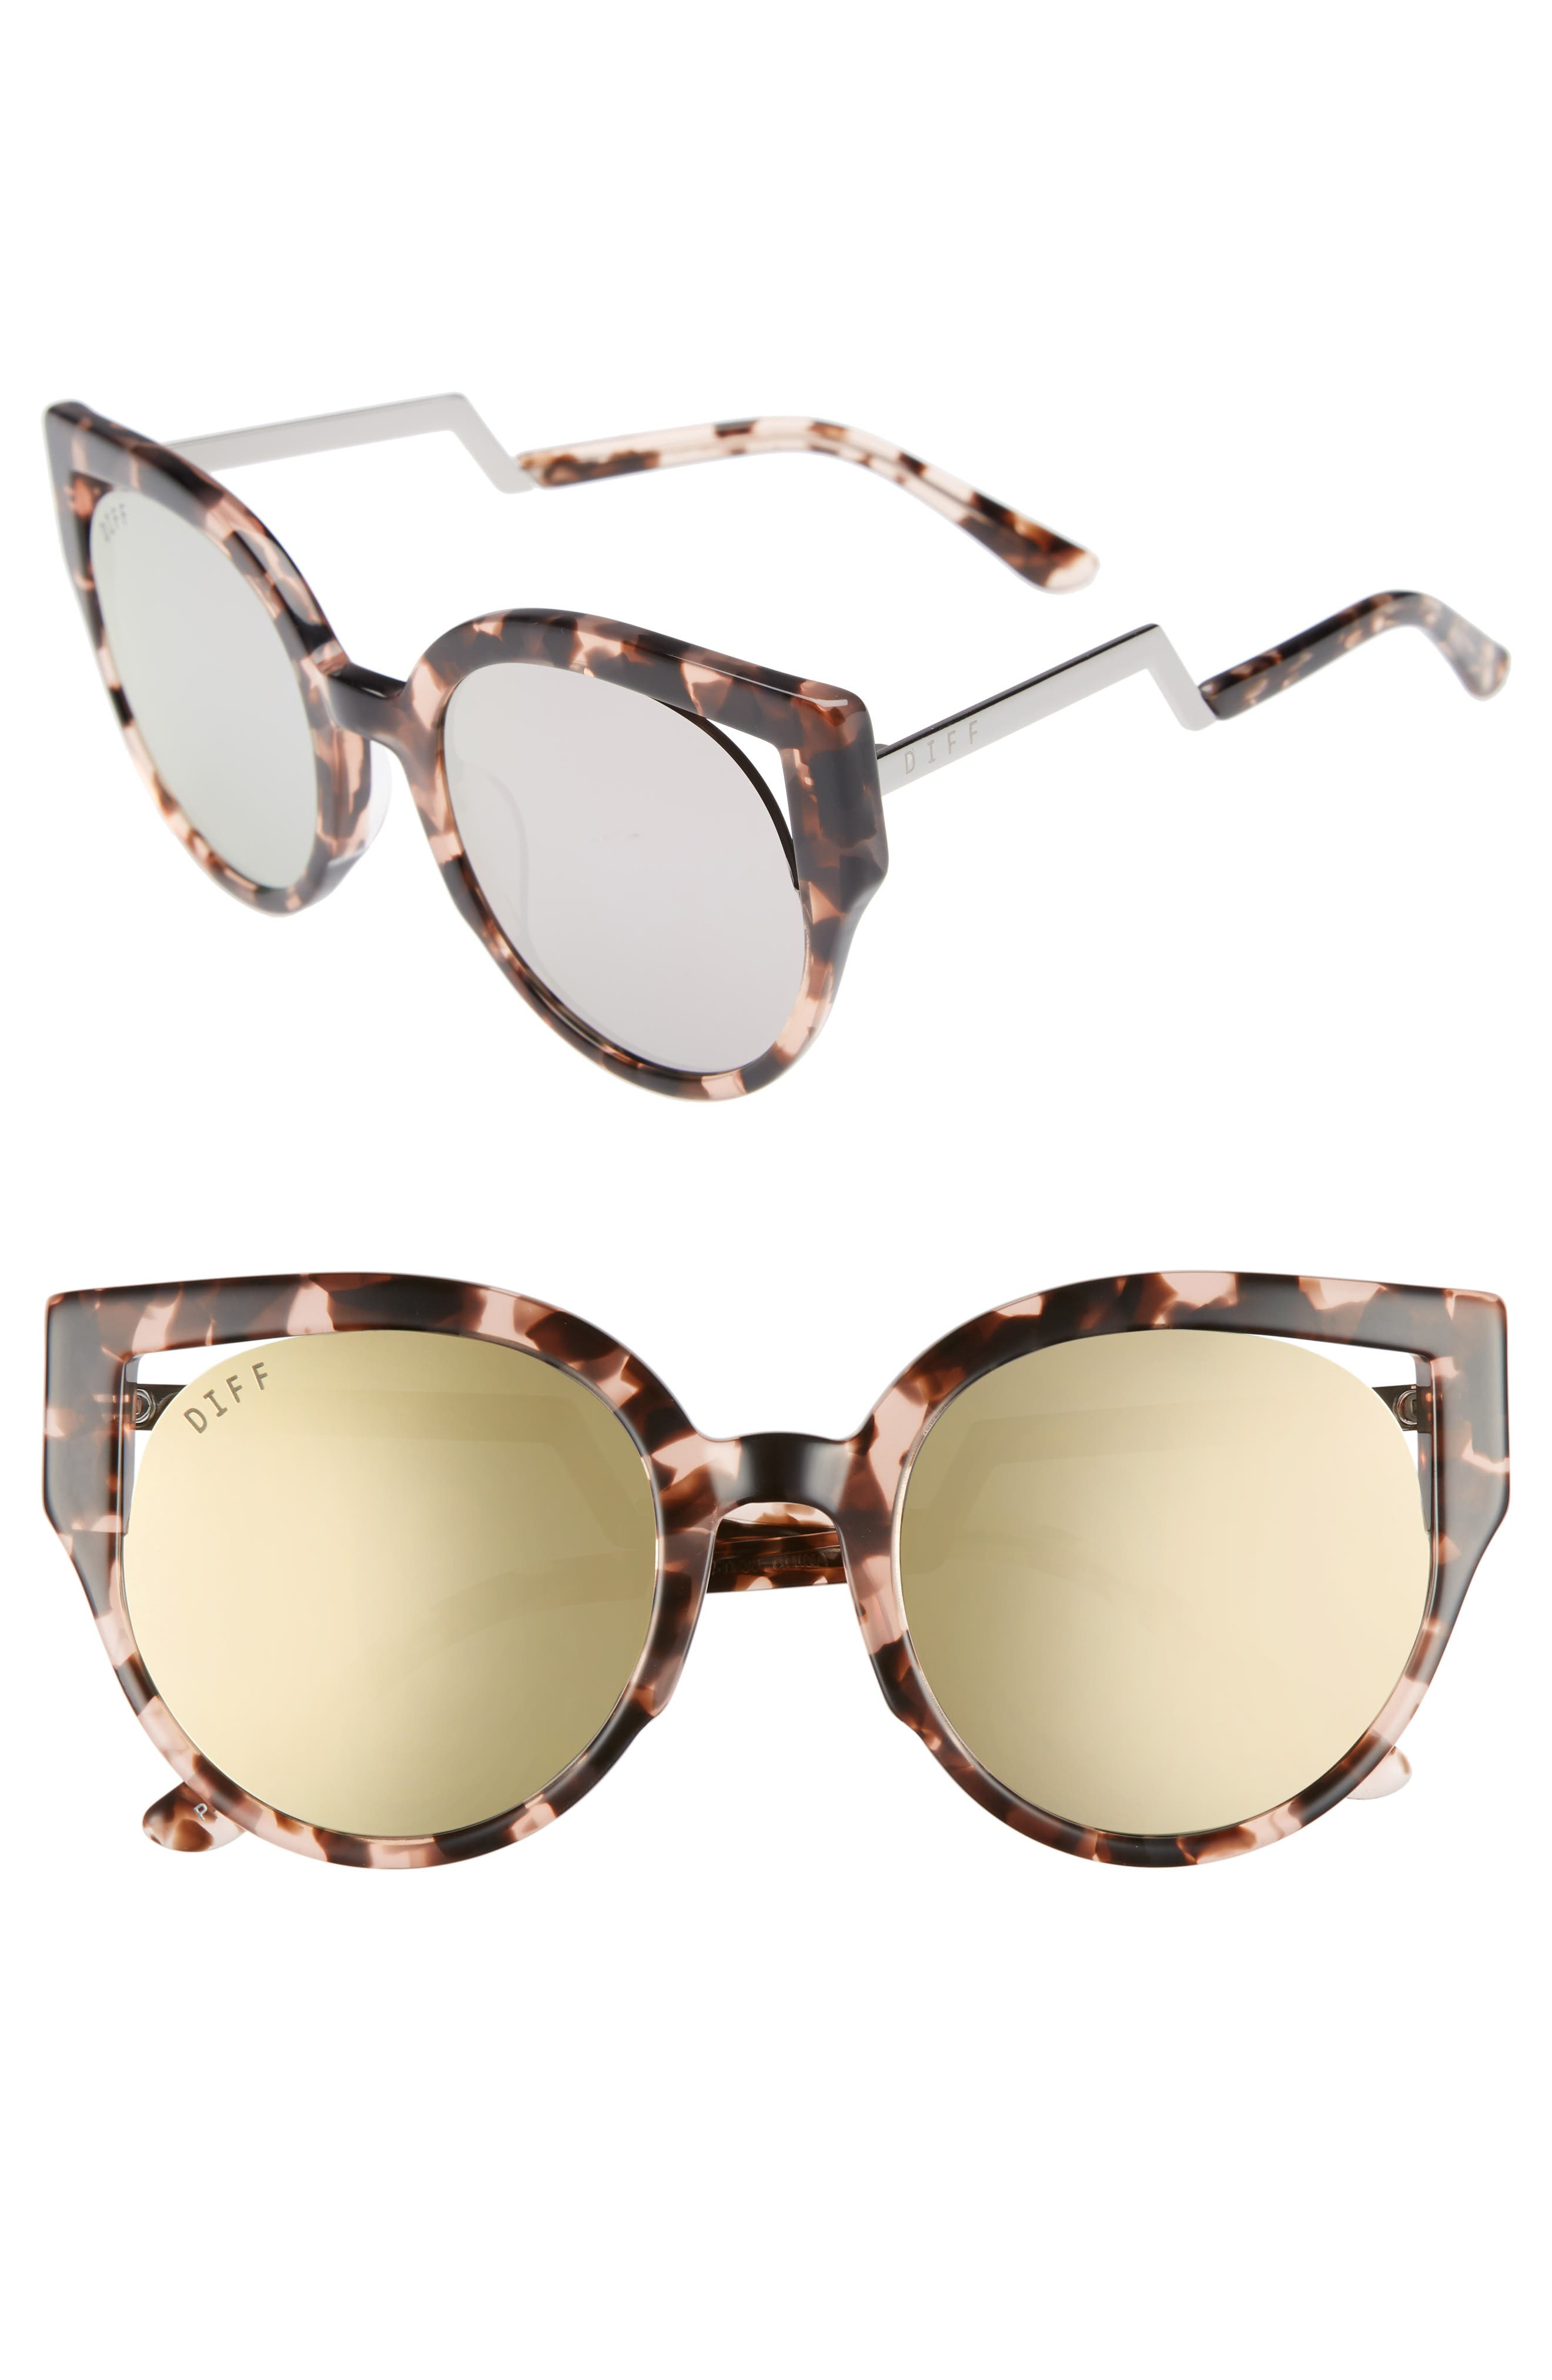 Penny 55mm Cat Eye Sunglasses,                             Main thumbnail 1, color,                             Himalayan Tortoise/ Taupe